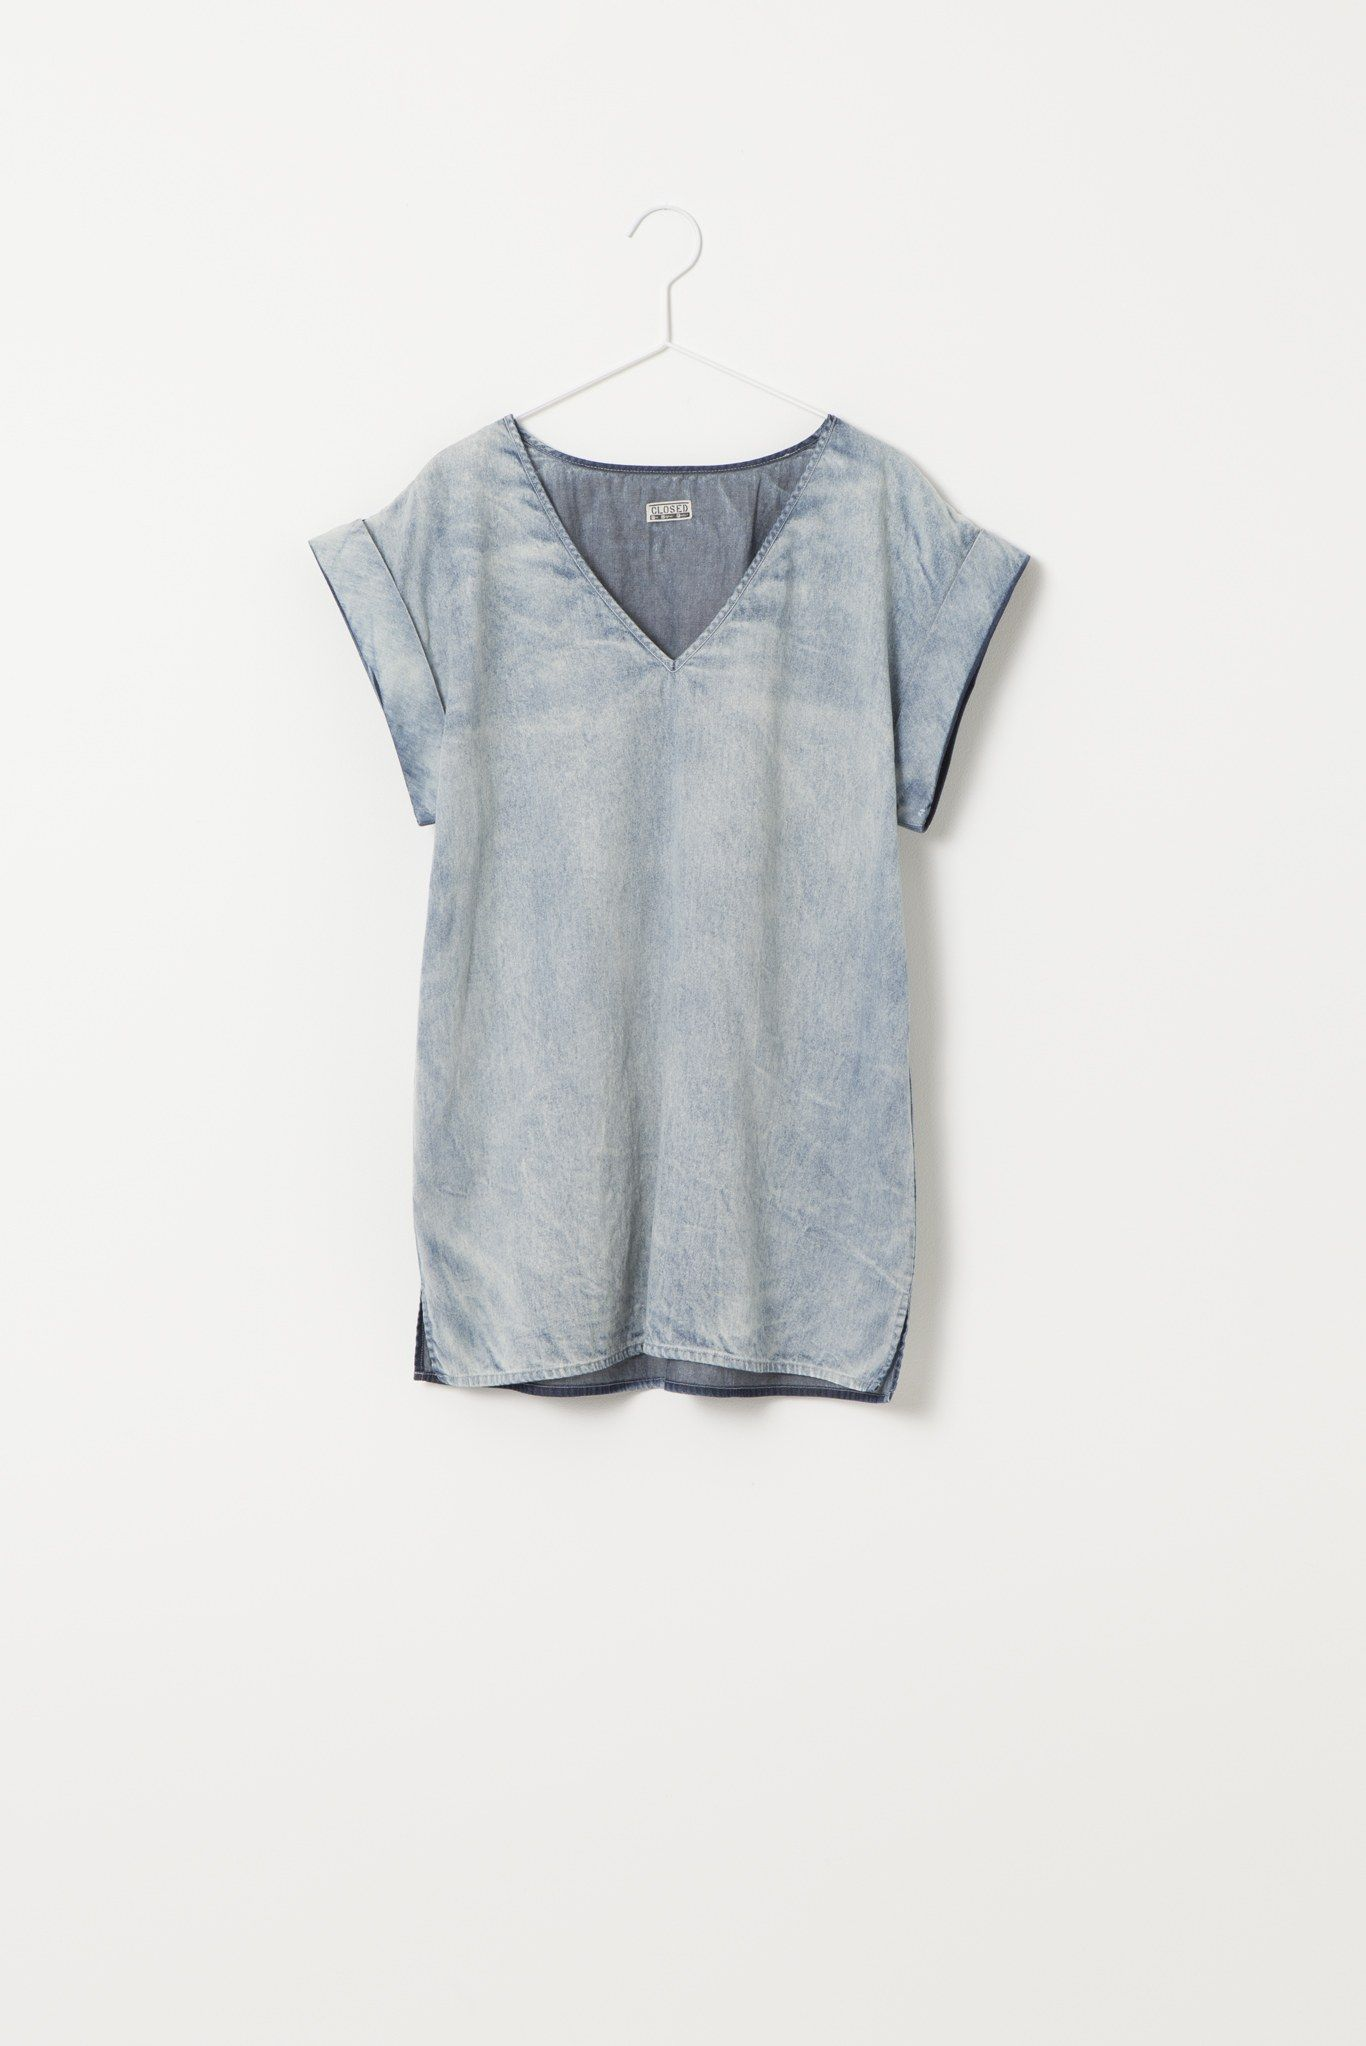 tomboy style. laid back top for the unfussiest of chicks. #tomboy #clothes #style